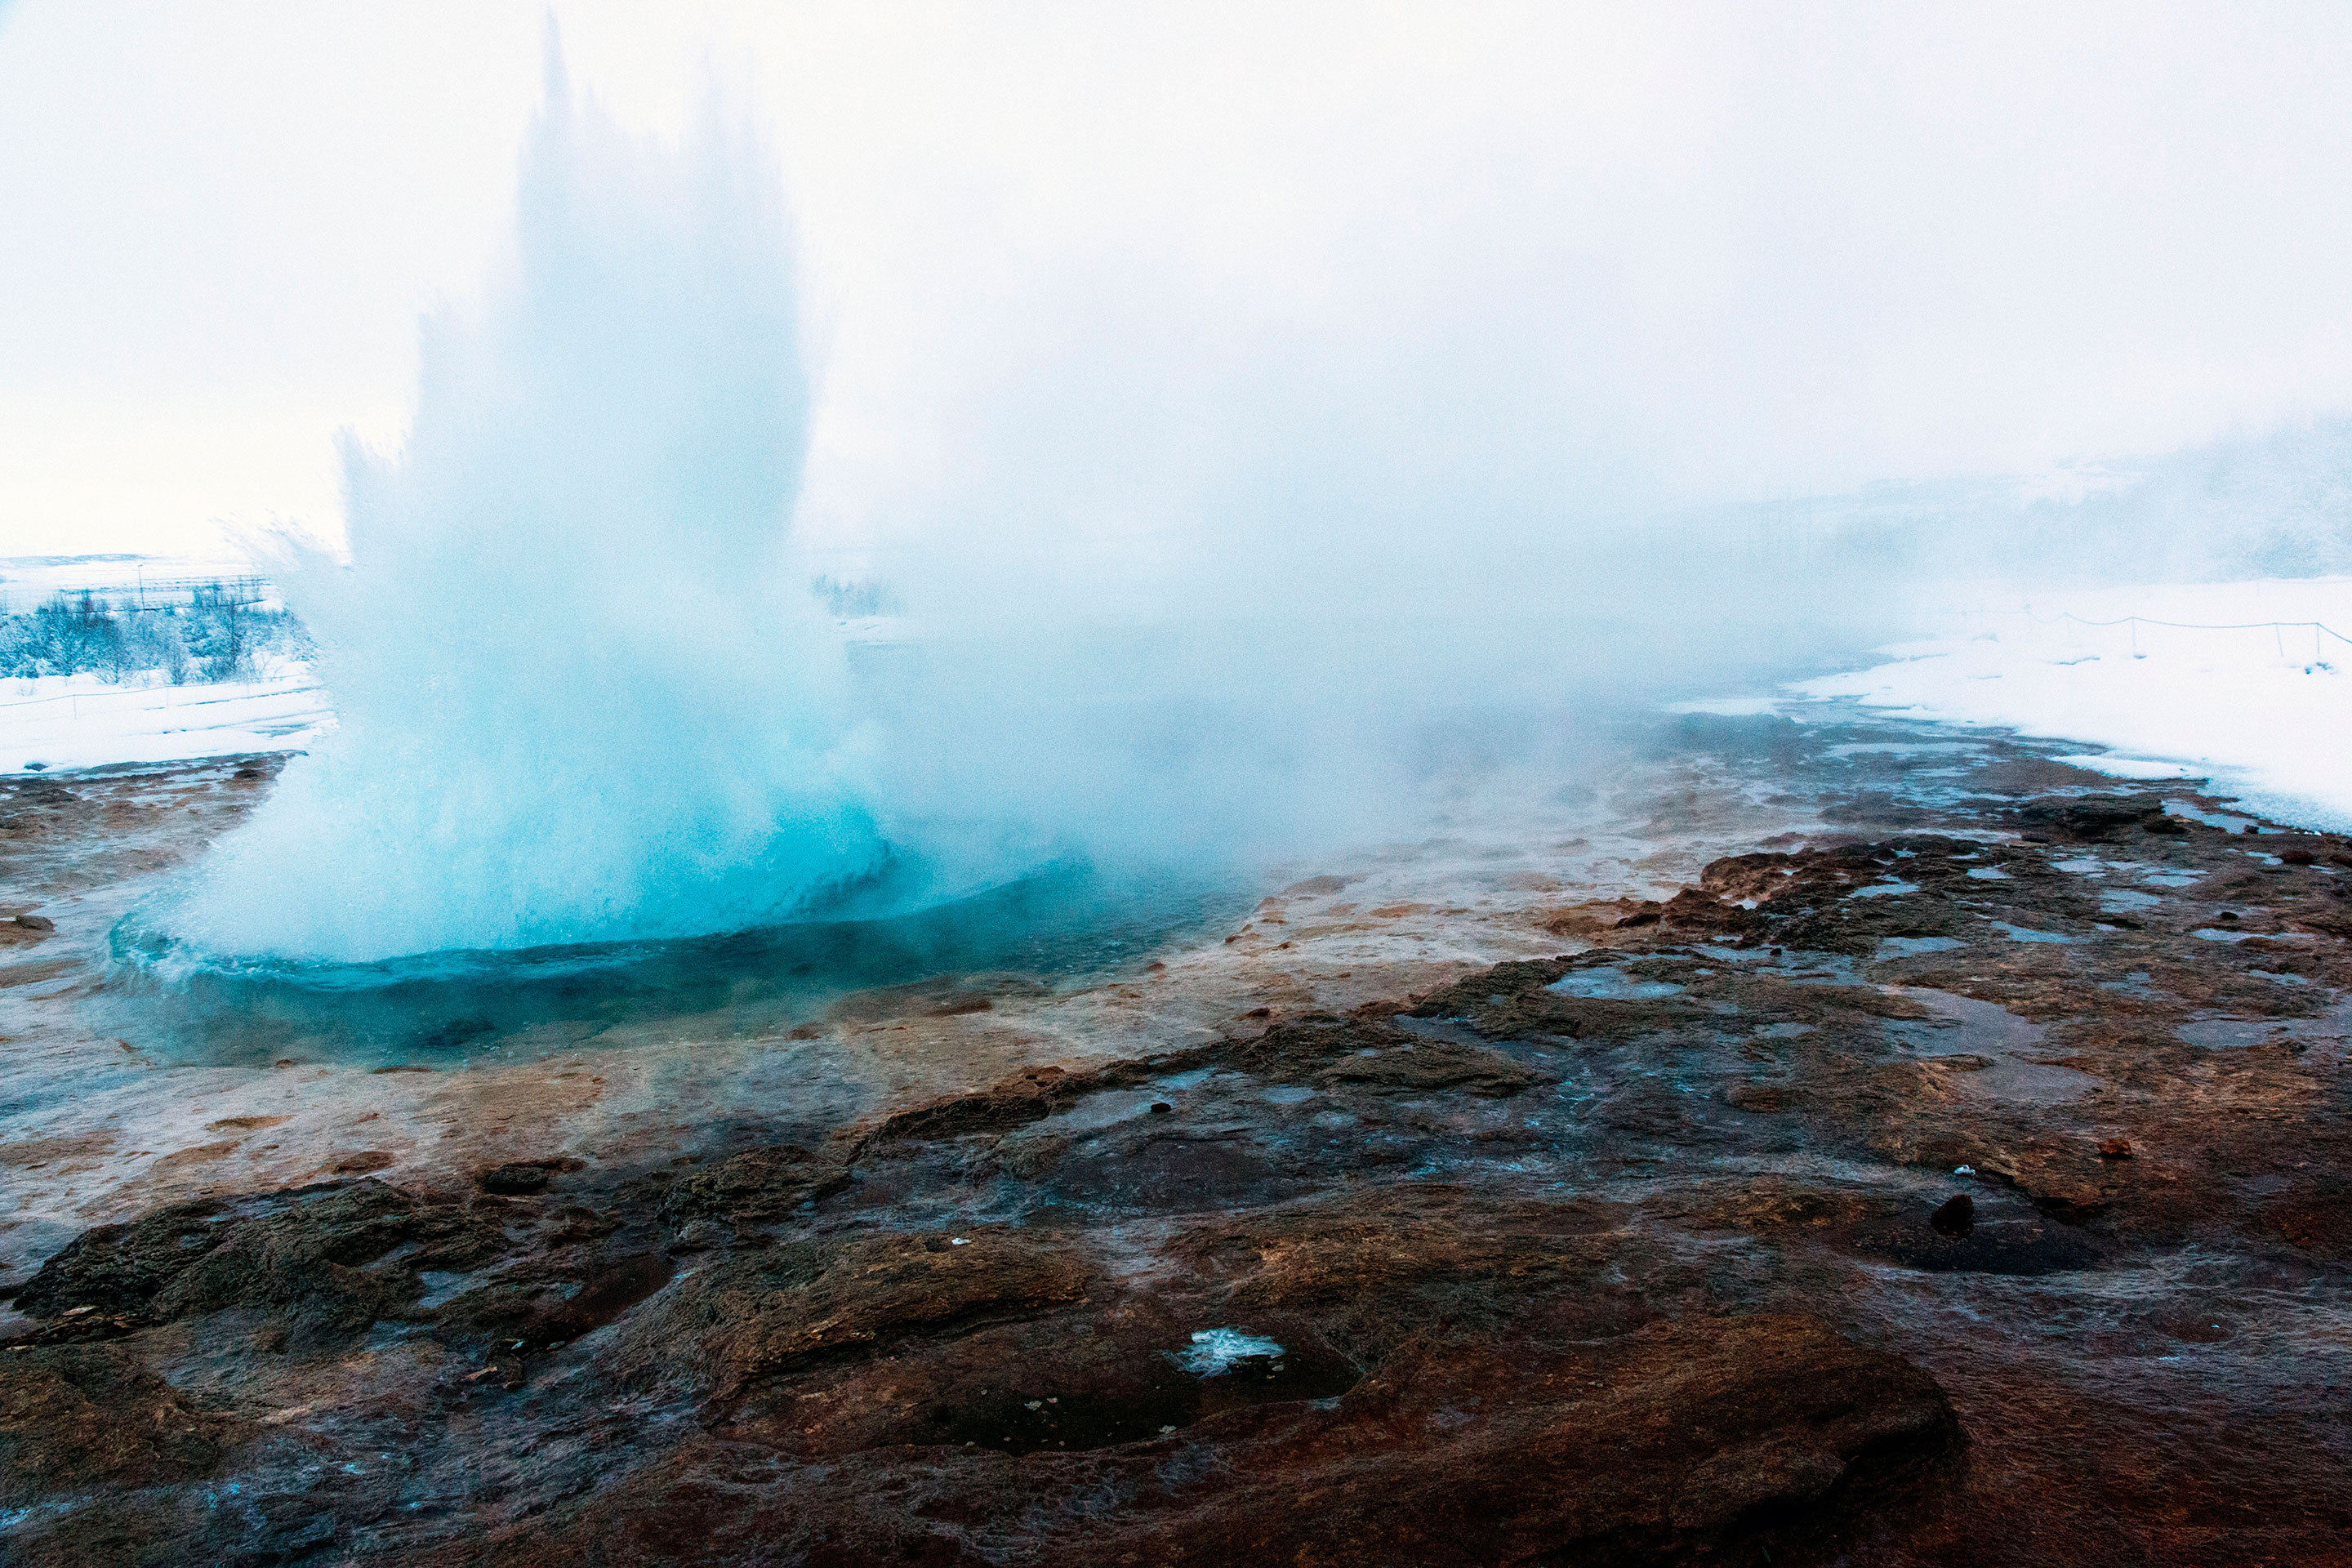 Islande - Geysir - Erruption